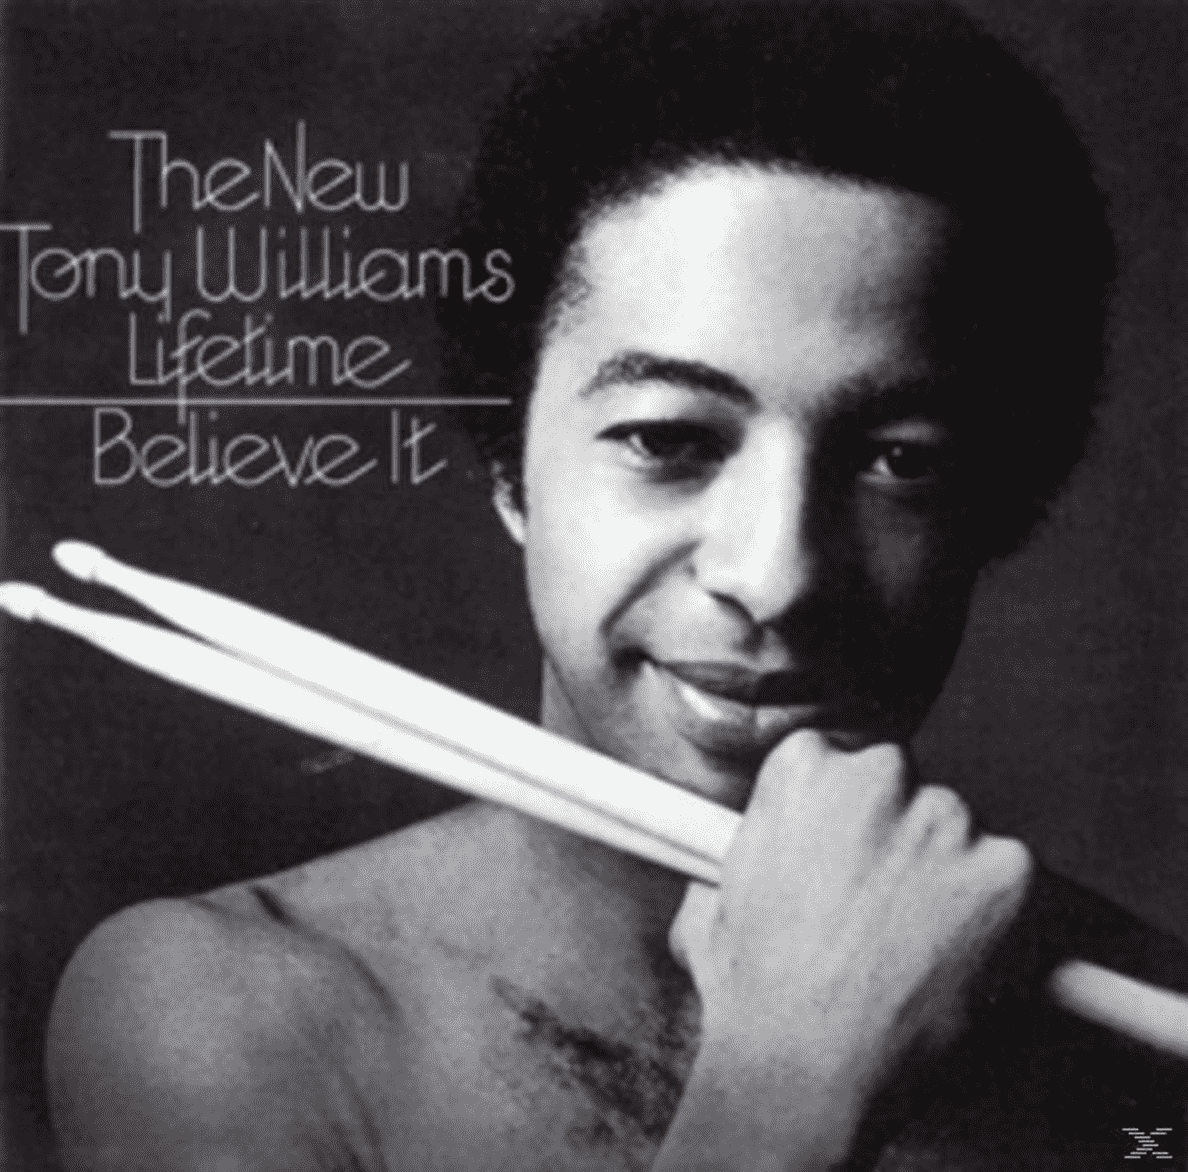 The New Tony Williams Lifetime - Black Widow - (CD)